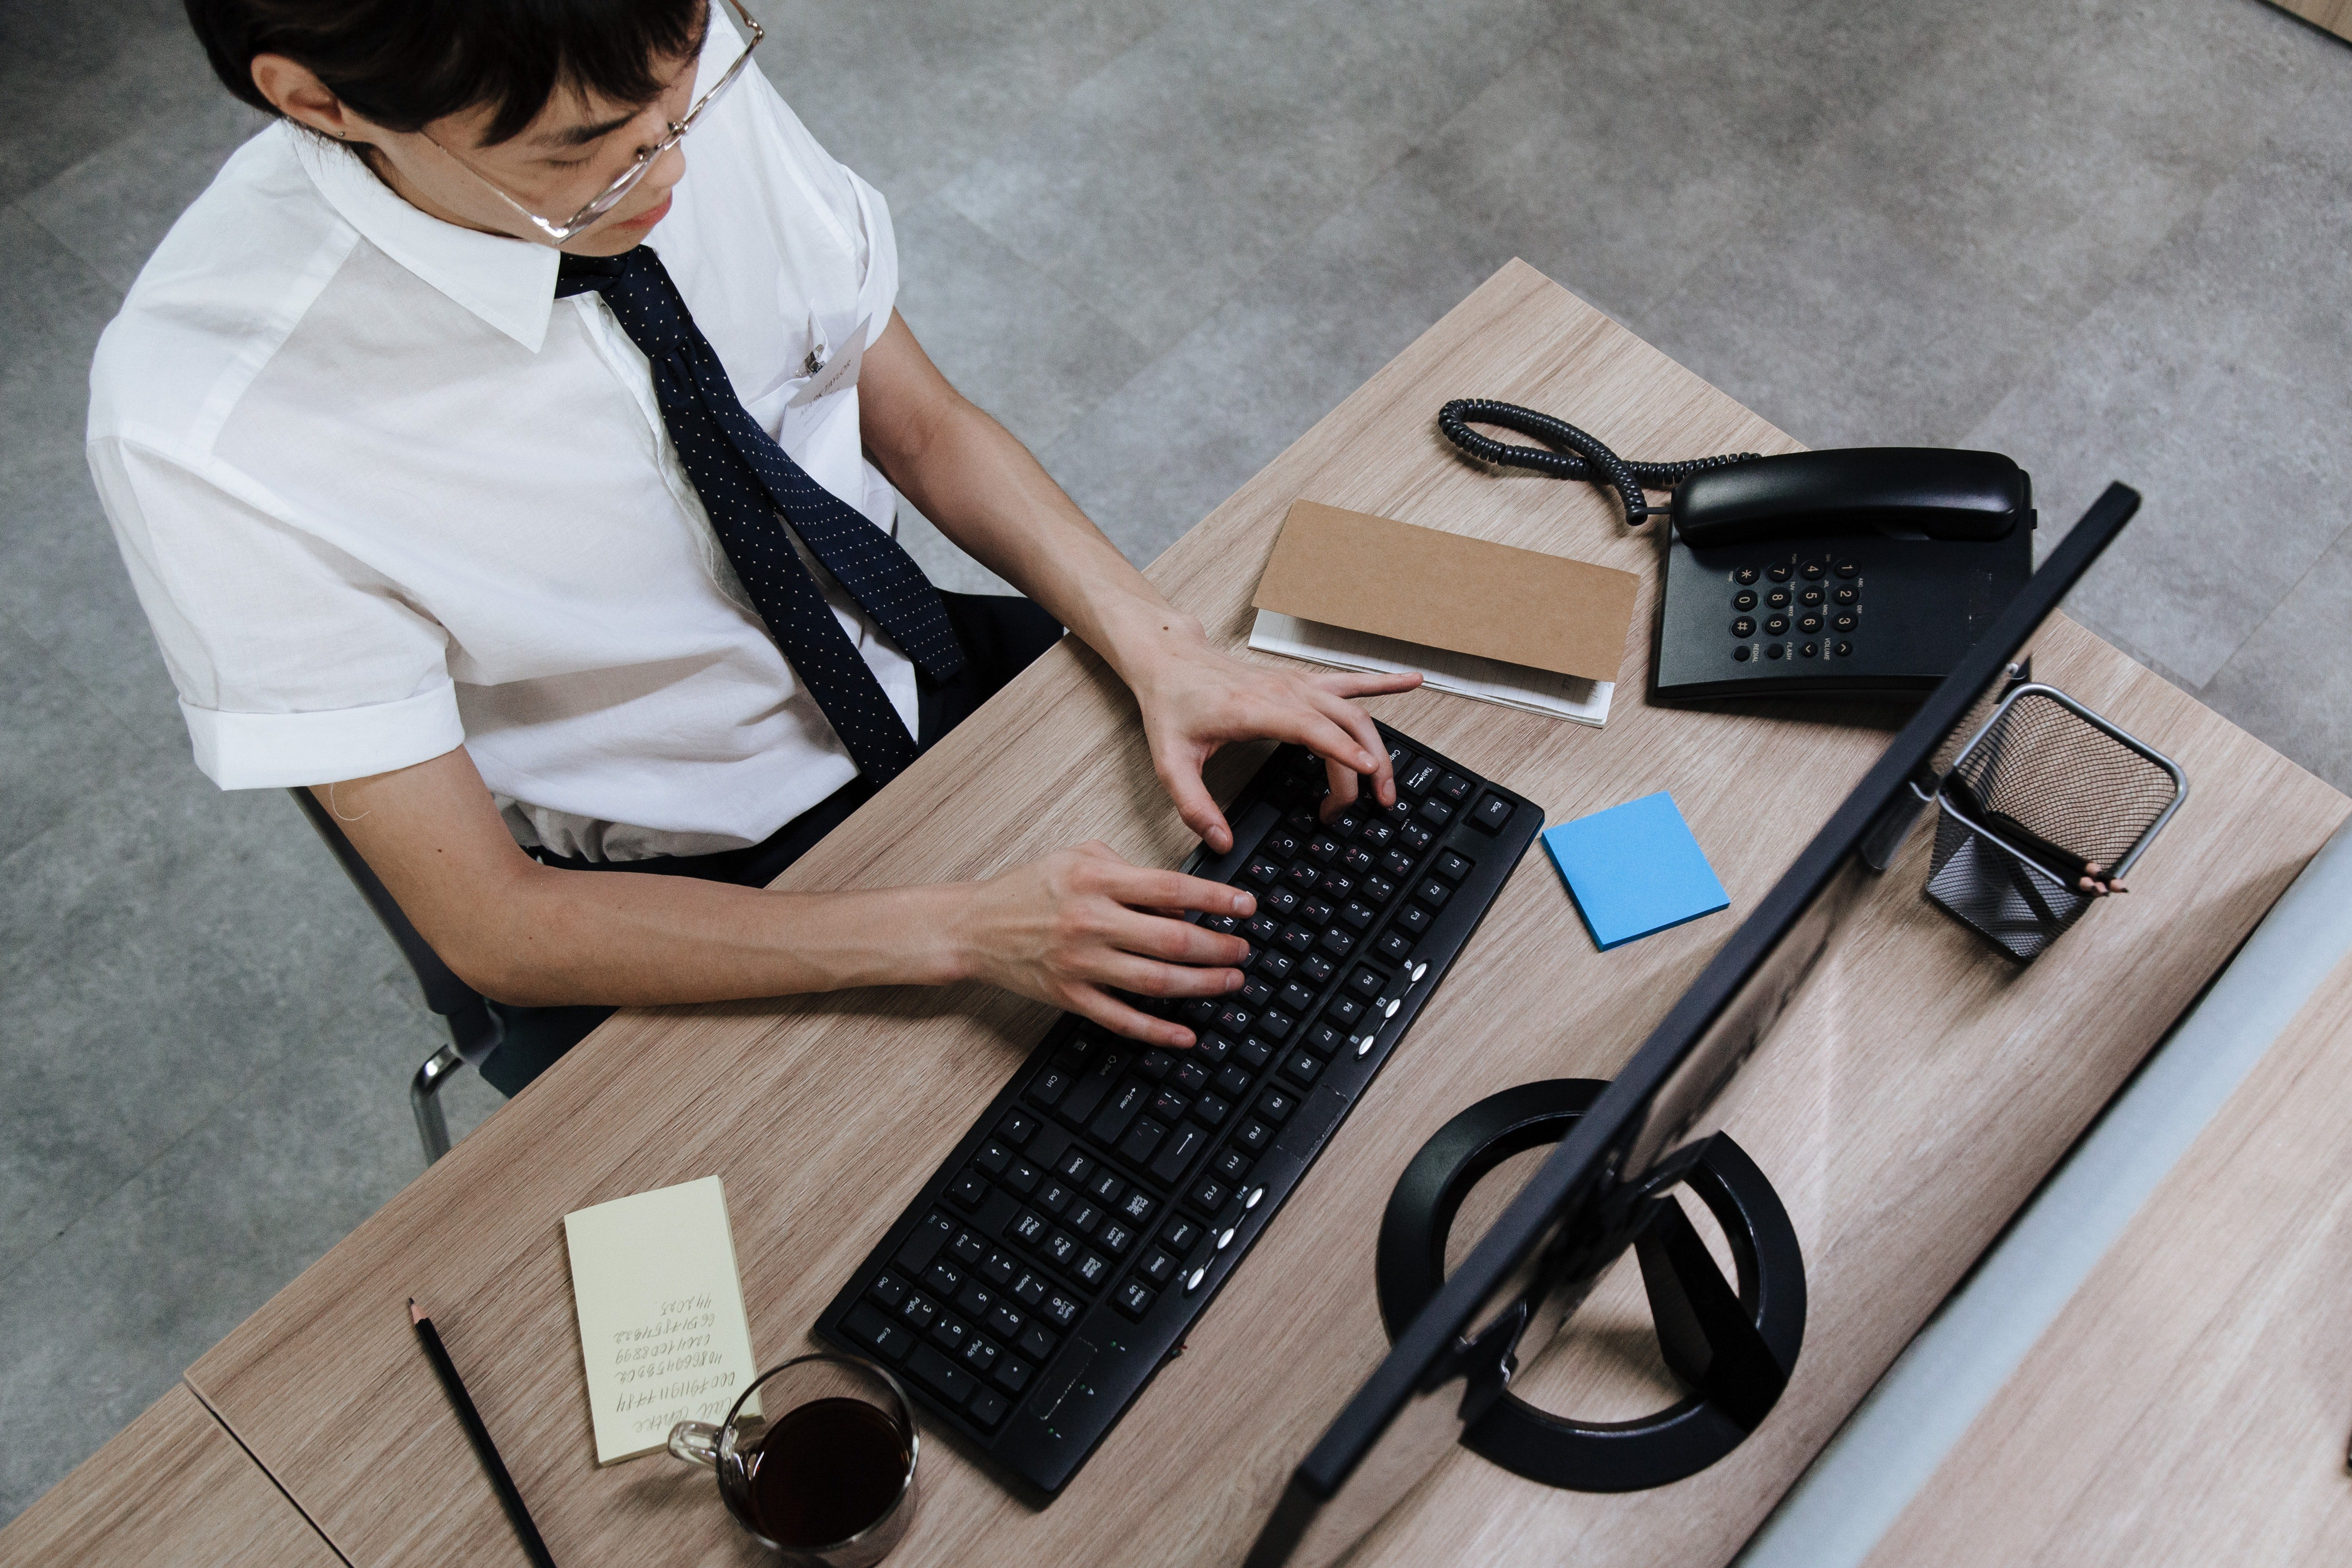 Three Tips to Get the Most Out of the Service Desk at Your Long-Term Care Facility